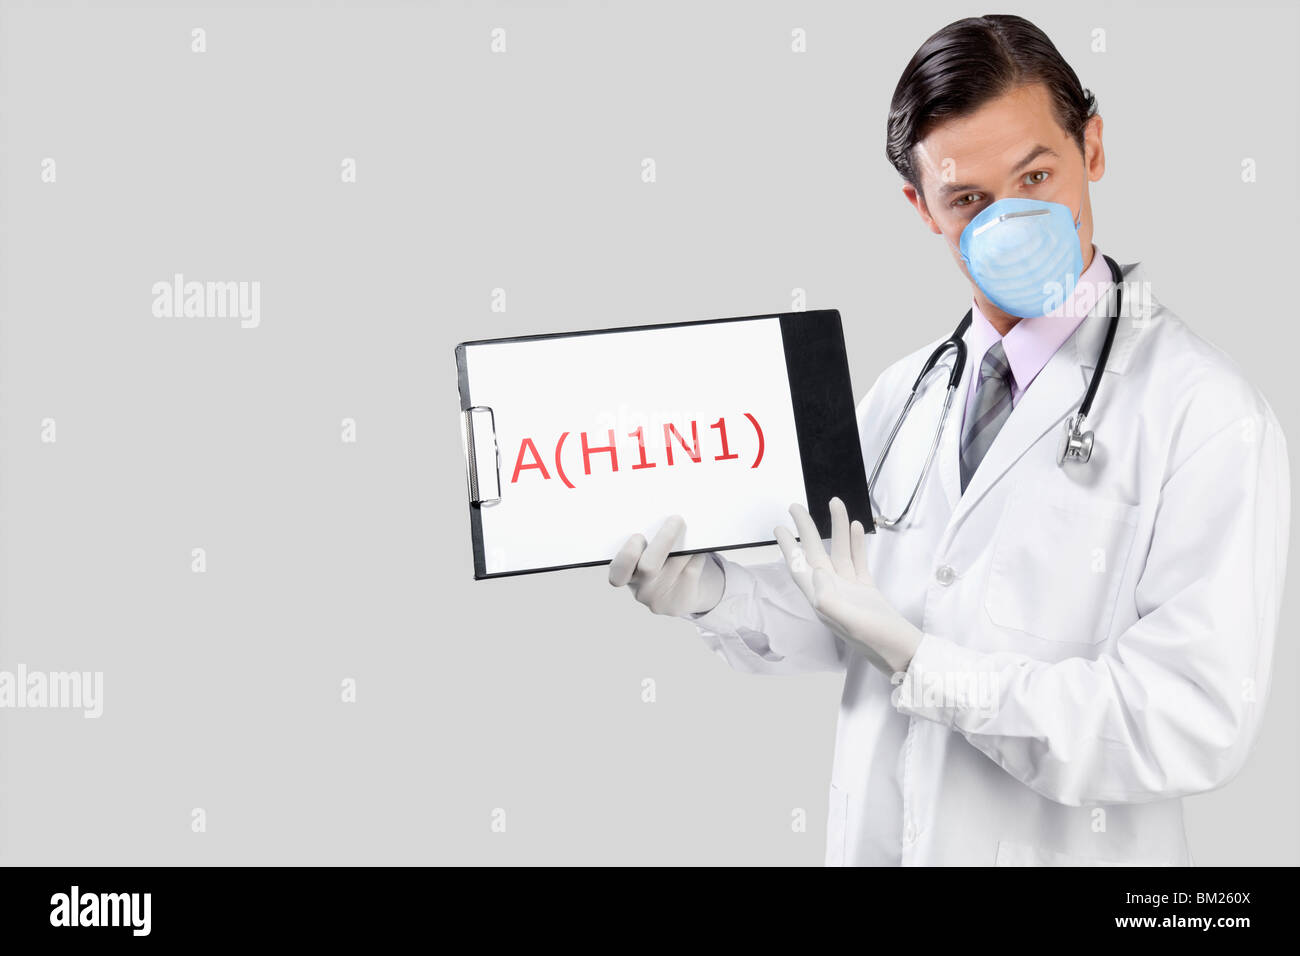 Portrait of a doctor showing H1N1 sign - Stock Image